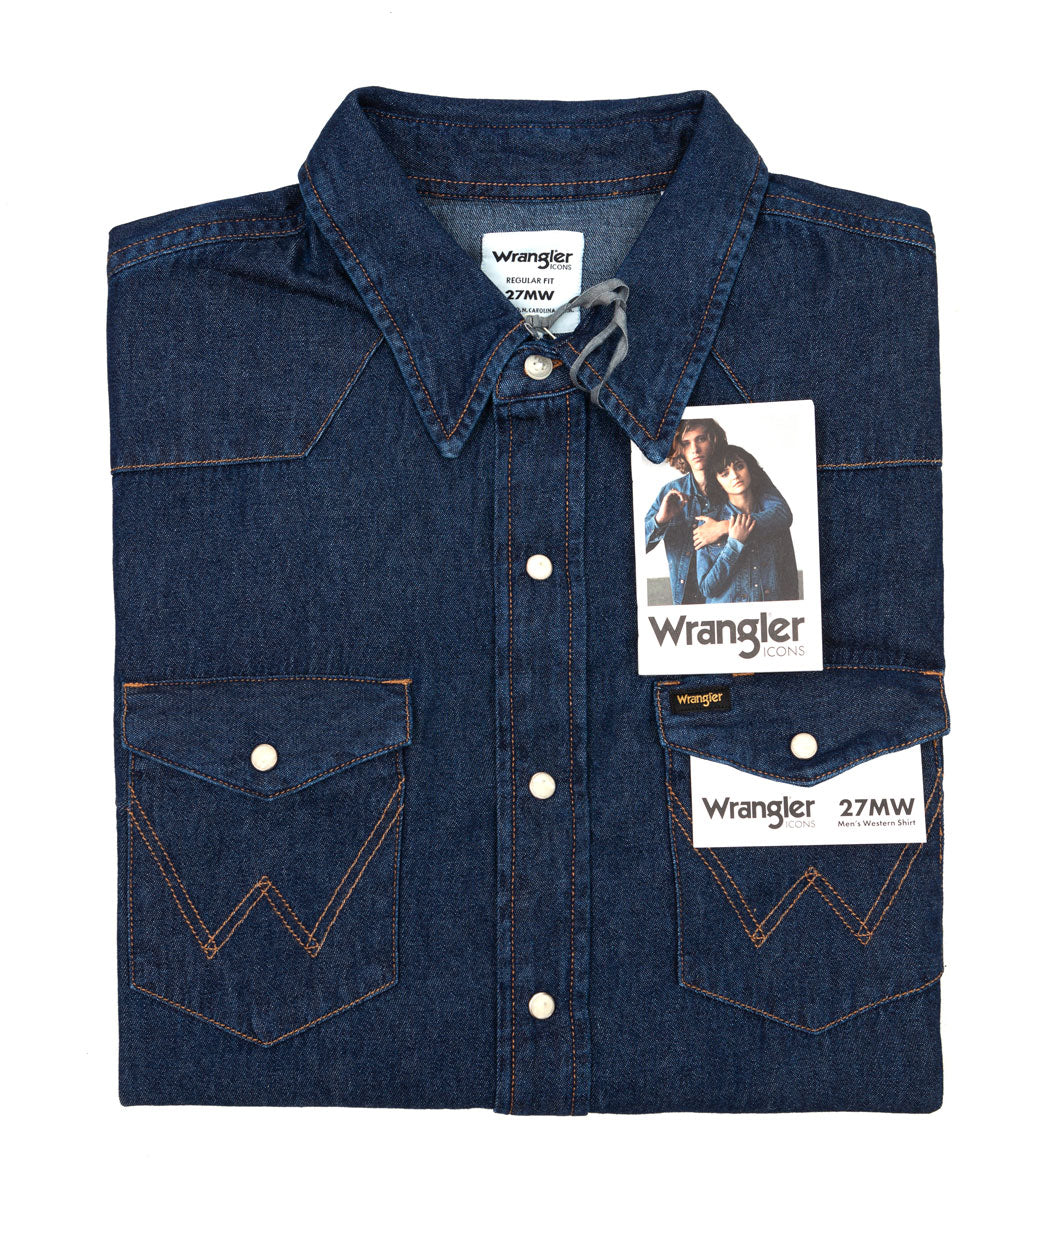 Classic iconic American-style denim shirt with pearl popper buttons and 'W' pocket stitching from Wrangler, made from 100% indigo cotton.